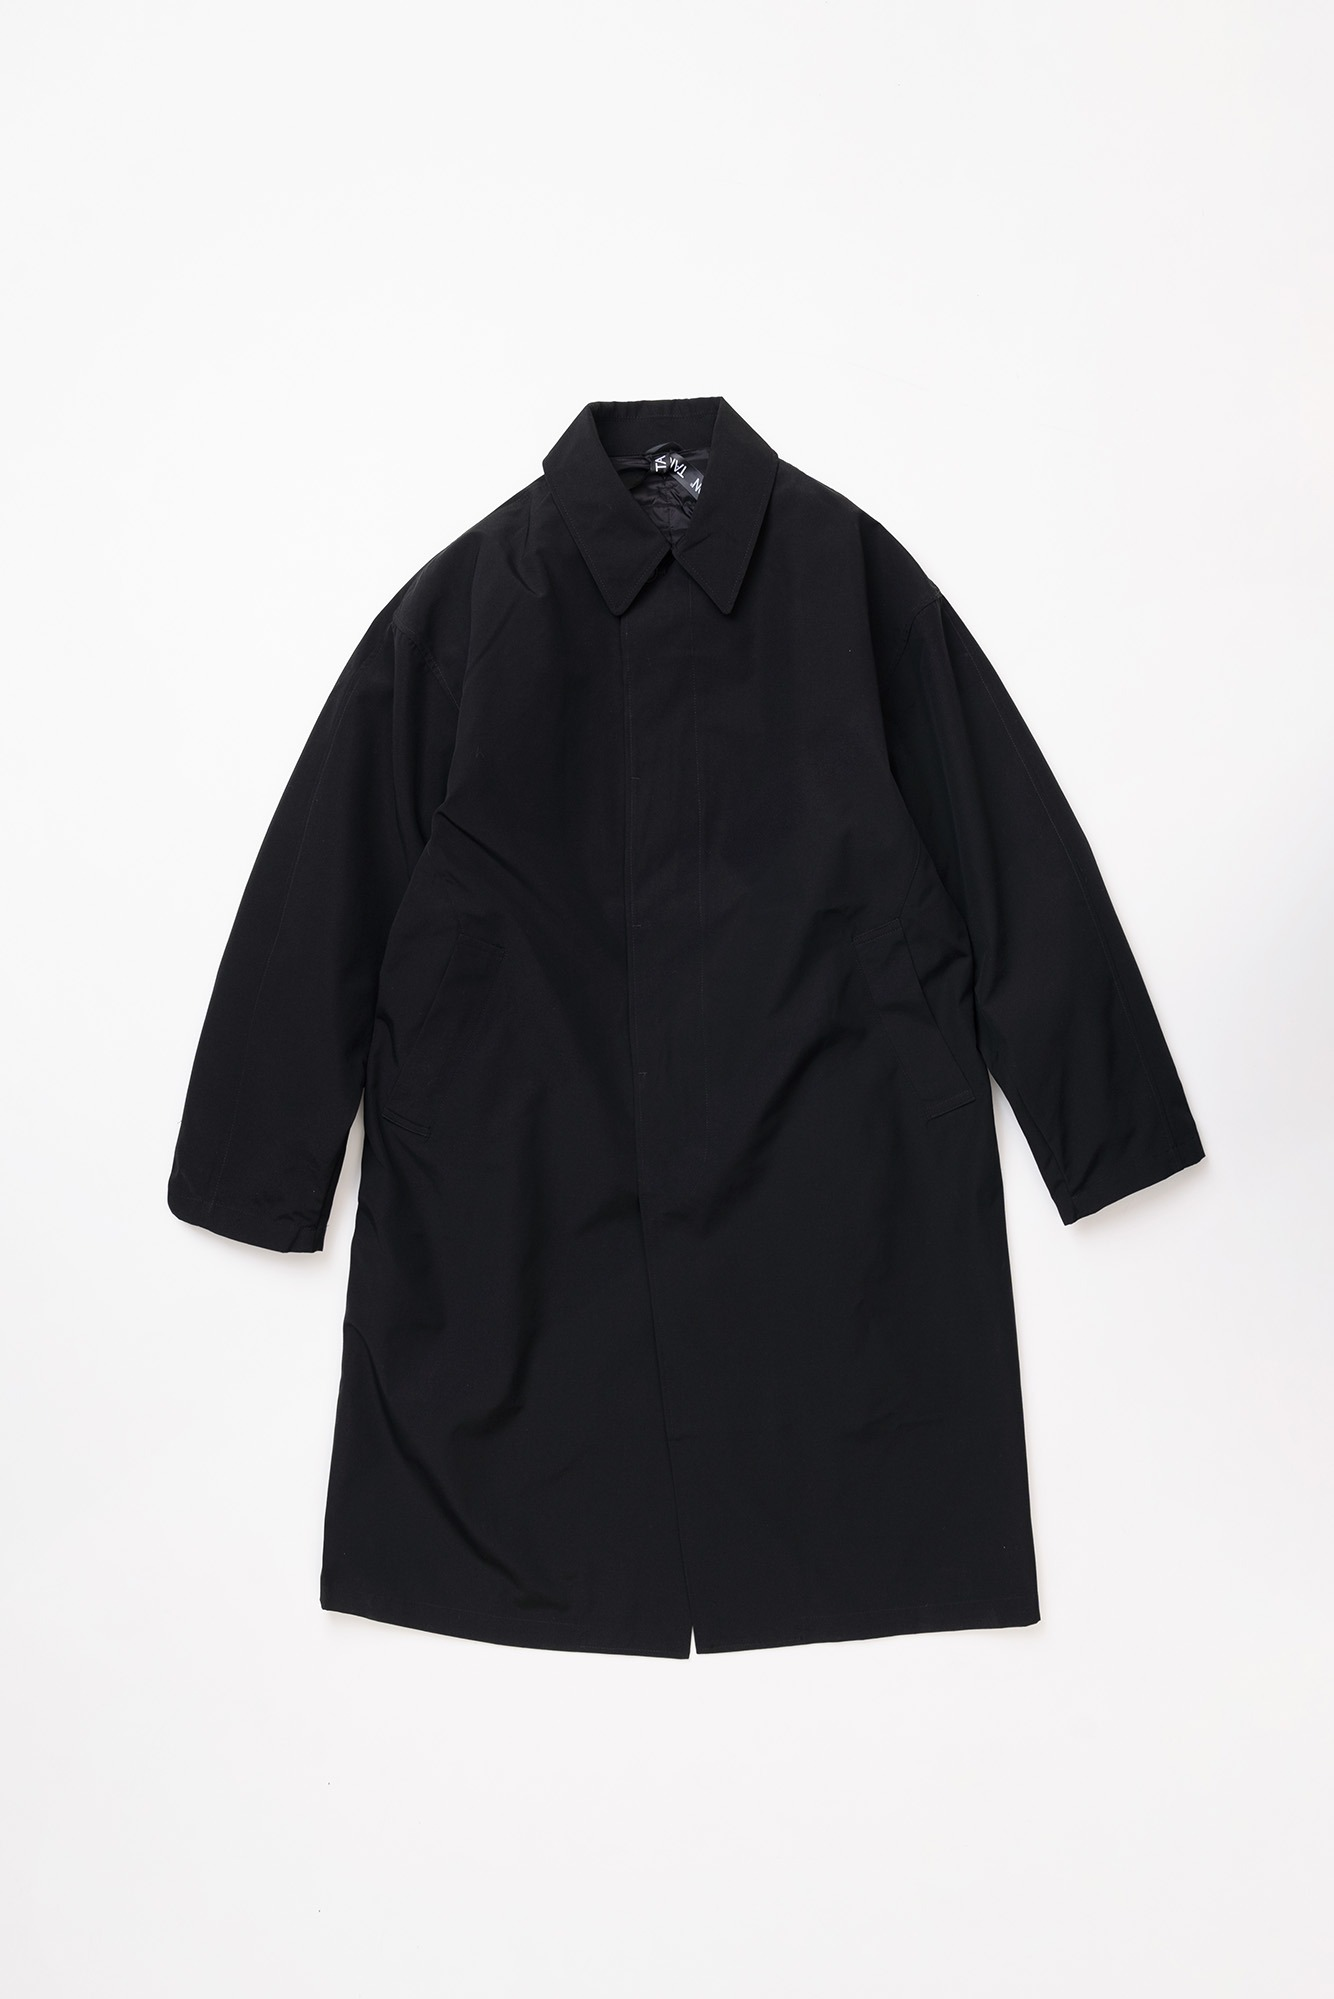 "TAION CR Bal Collar Coat Set ""Black/Black"""